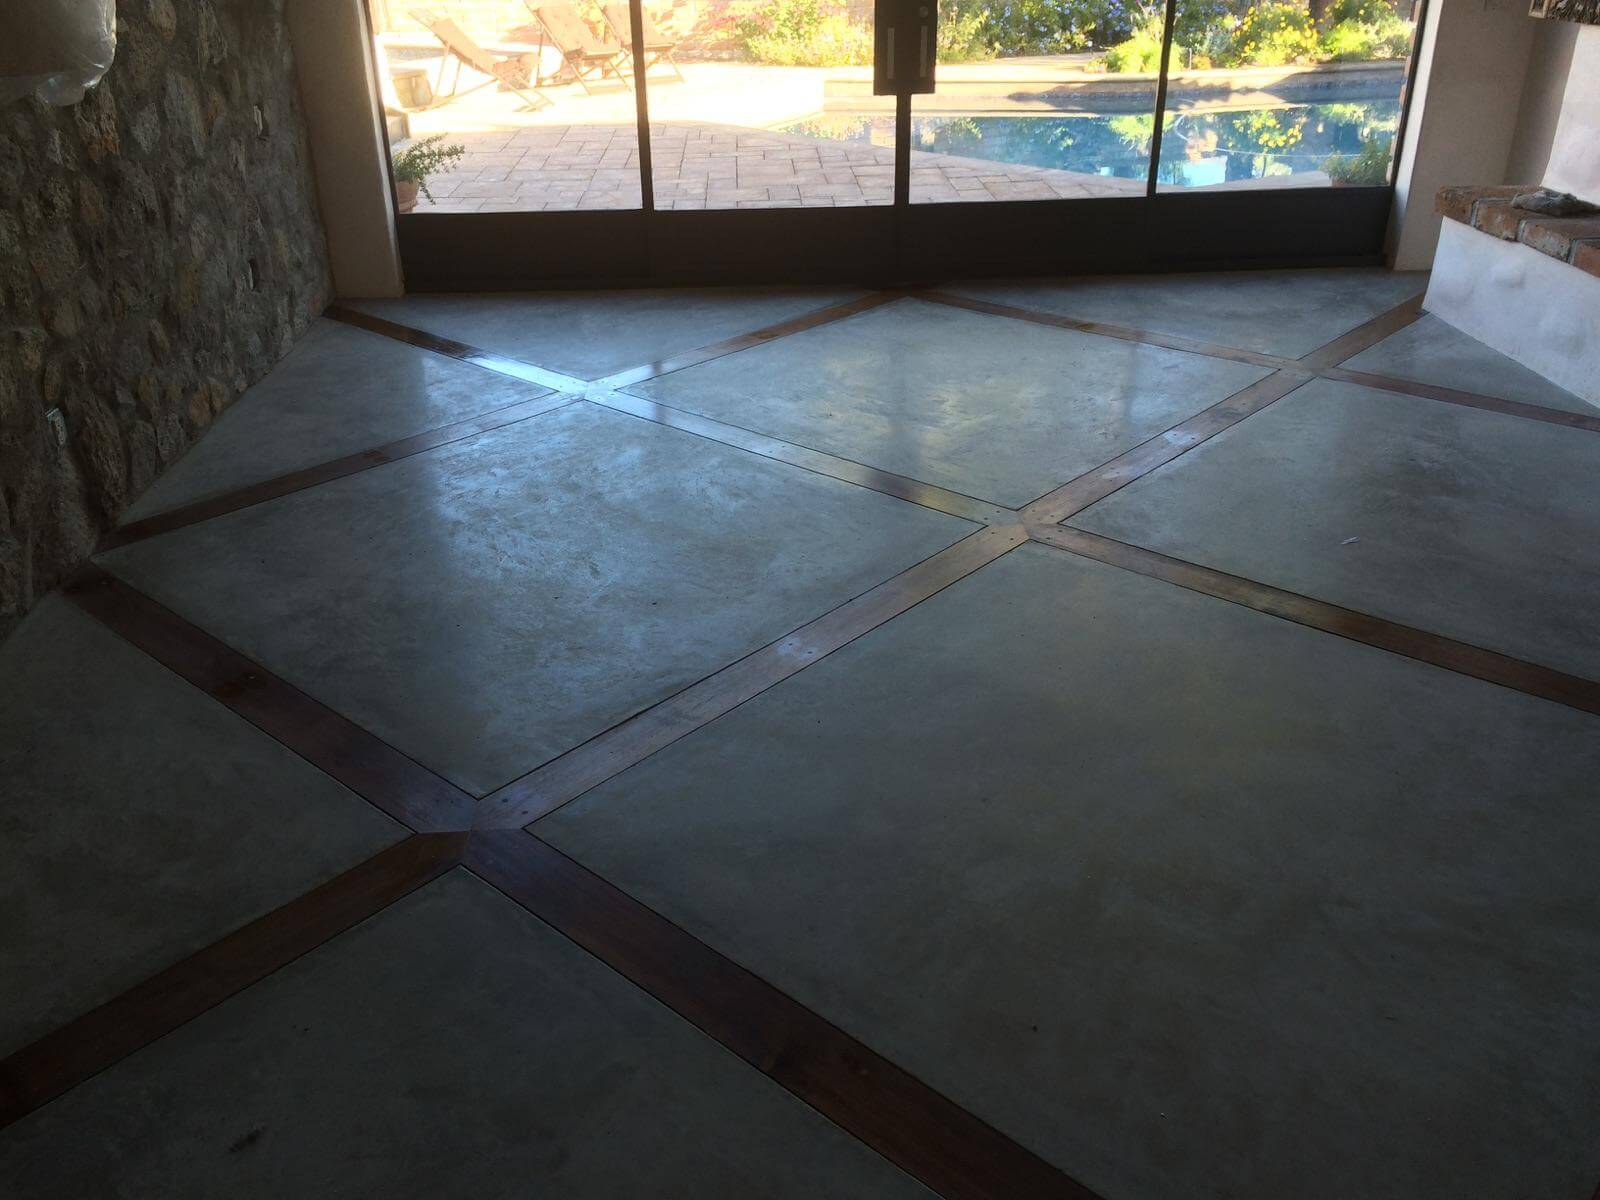 Polished Concrete House Floors With Decorative Wood Inlay